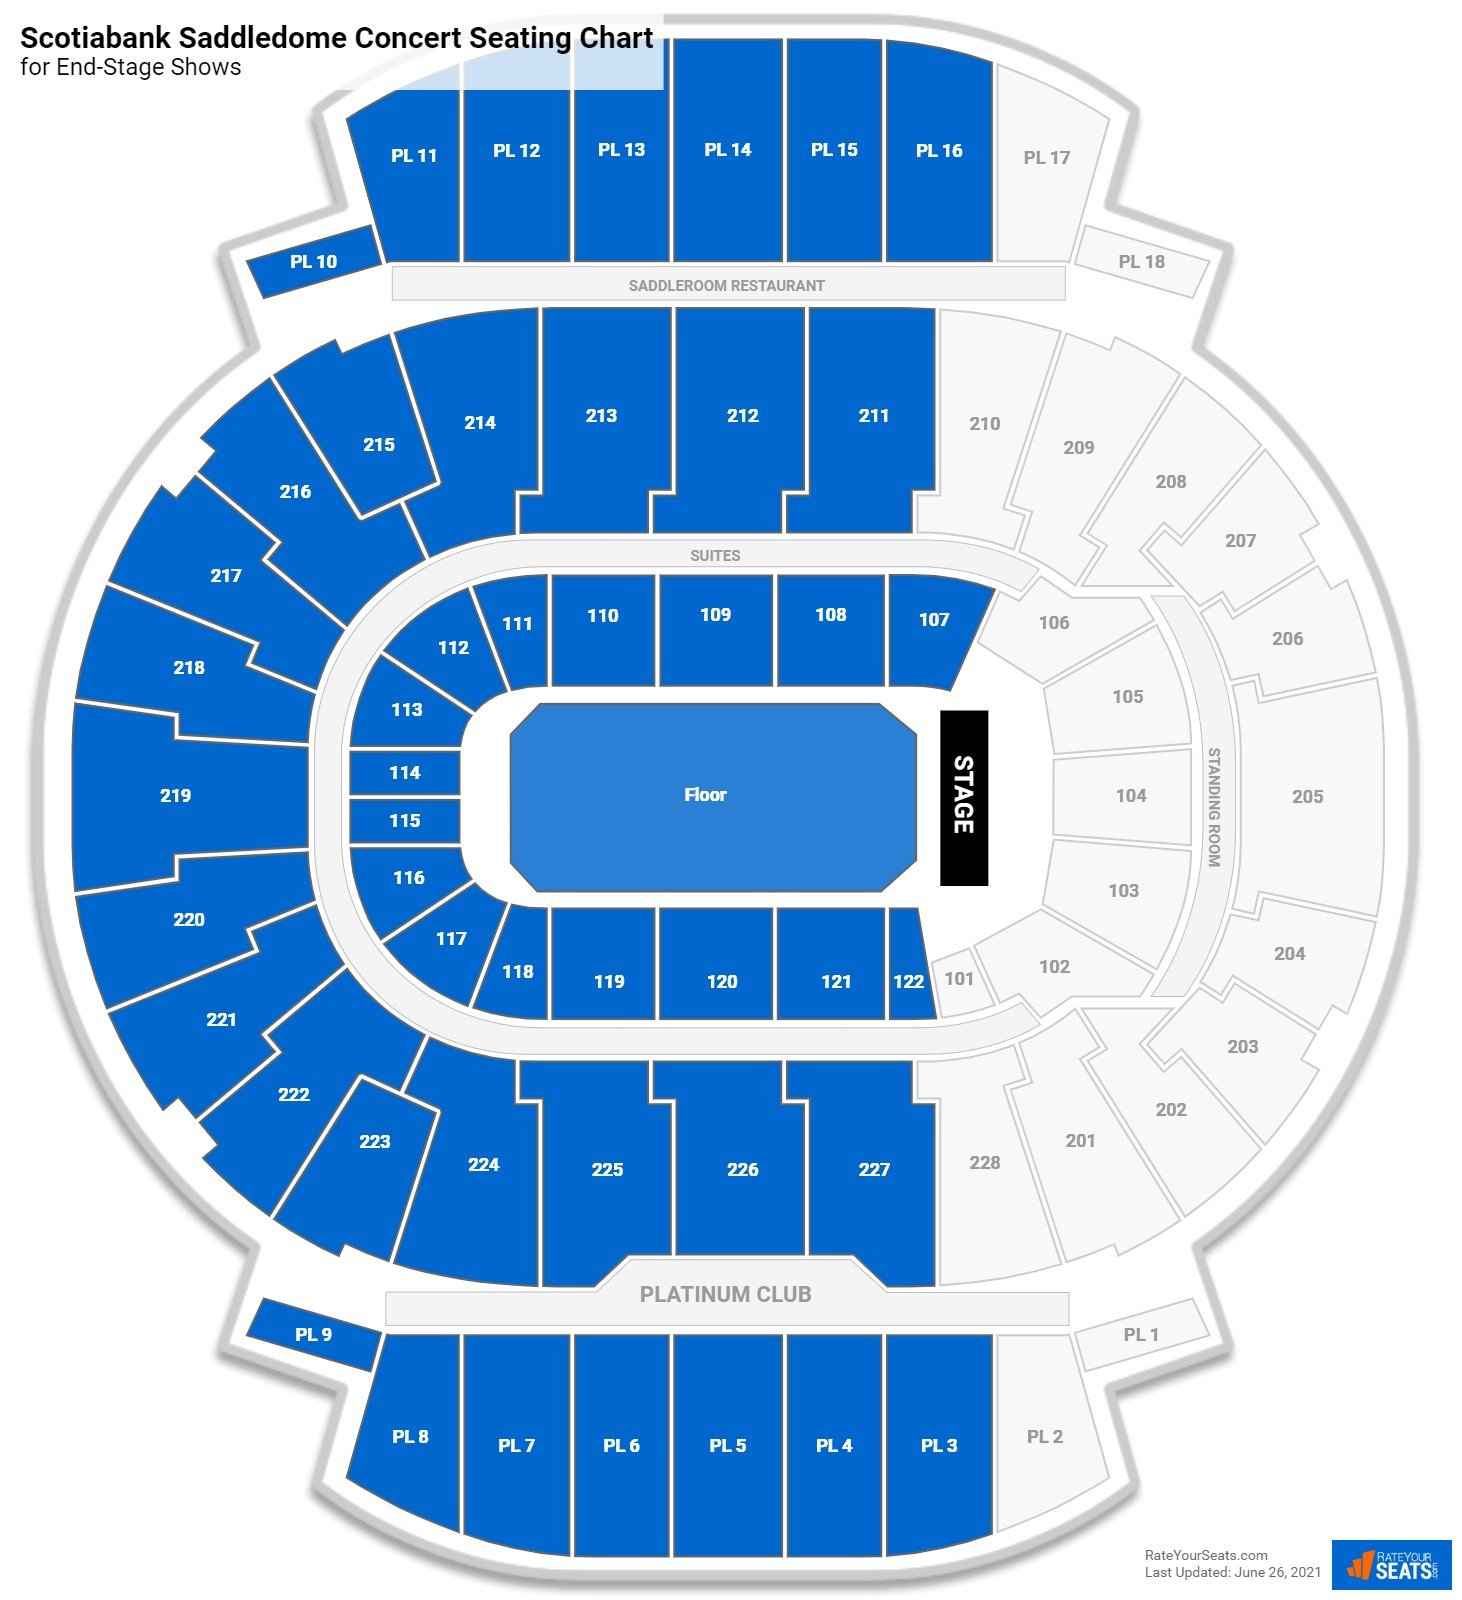 Scotiabank Saddledome Seating Chart for Concerts